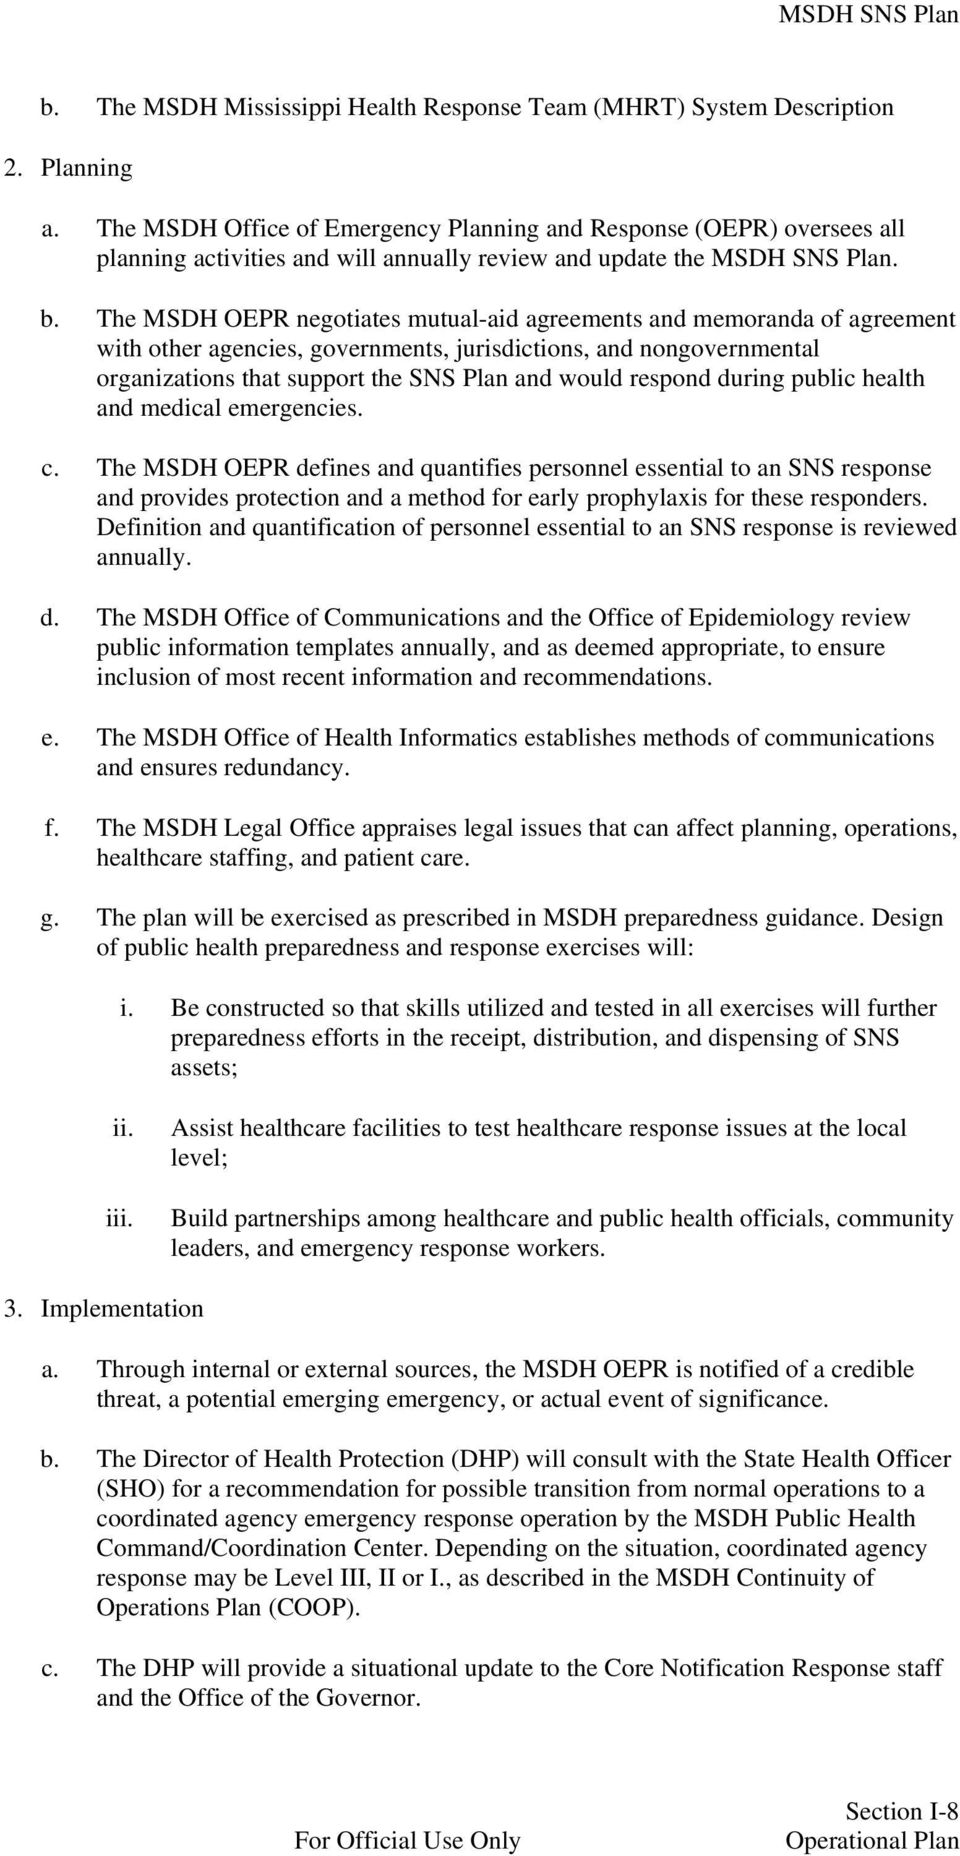 The MSDH OEPR negotiates mutual-aid agreements and memoranda of agreement with other agencies, governments, jurisdictions, and nongovernmental organizations that support the SNS Plan and would